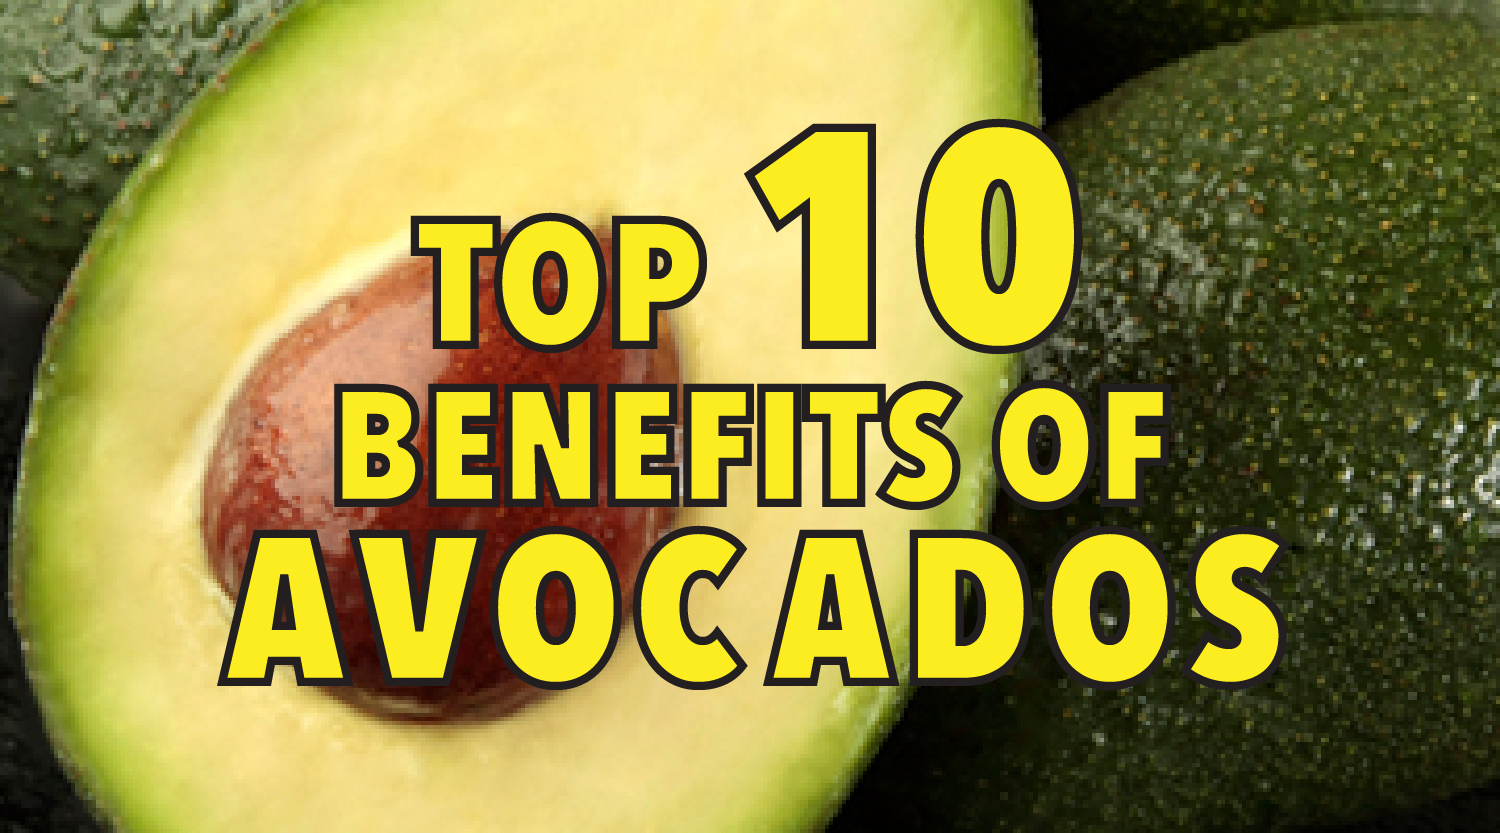 Top 10 benefits of avocados